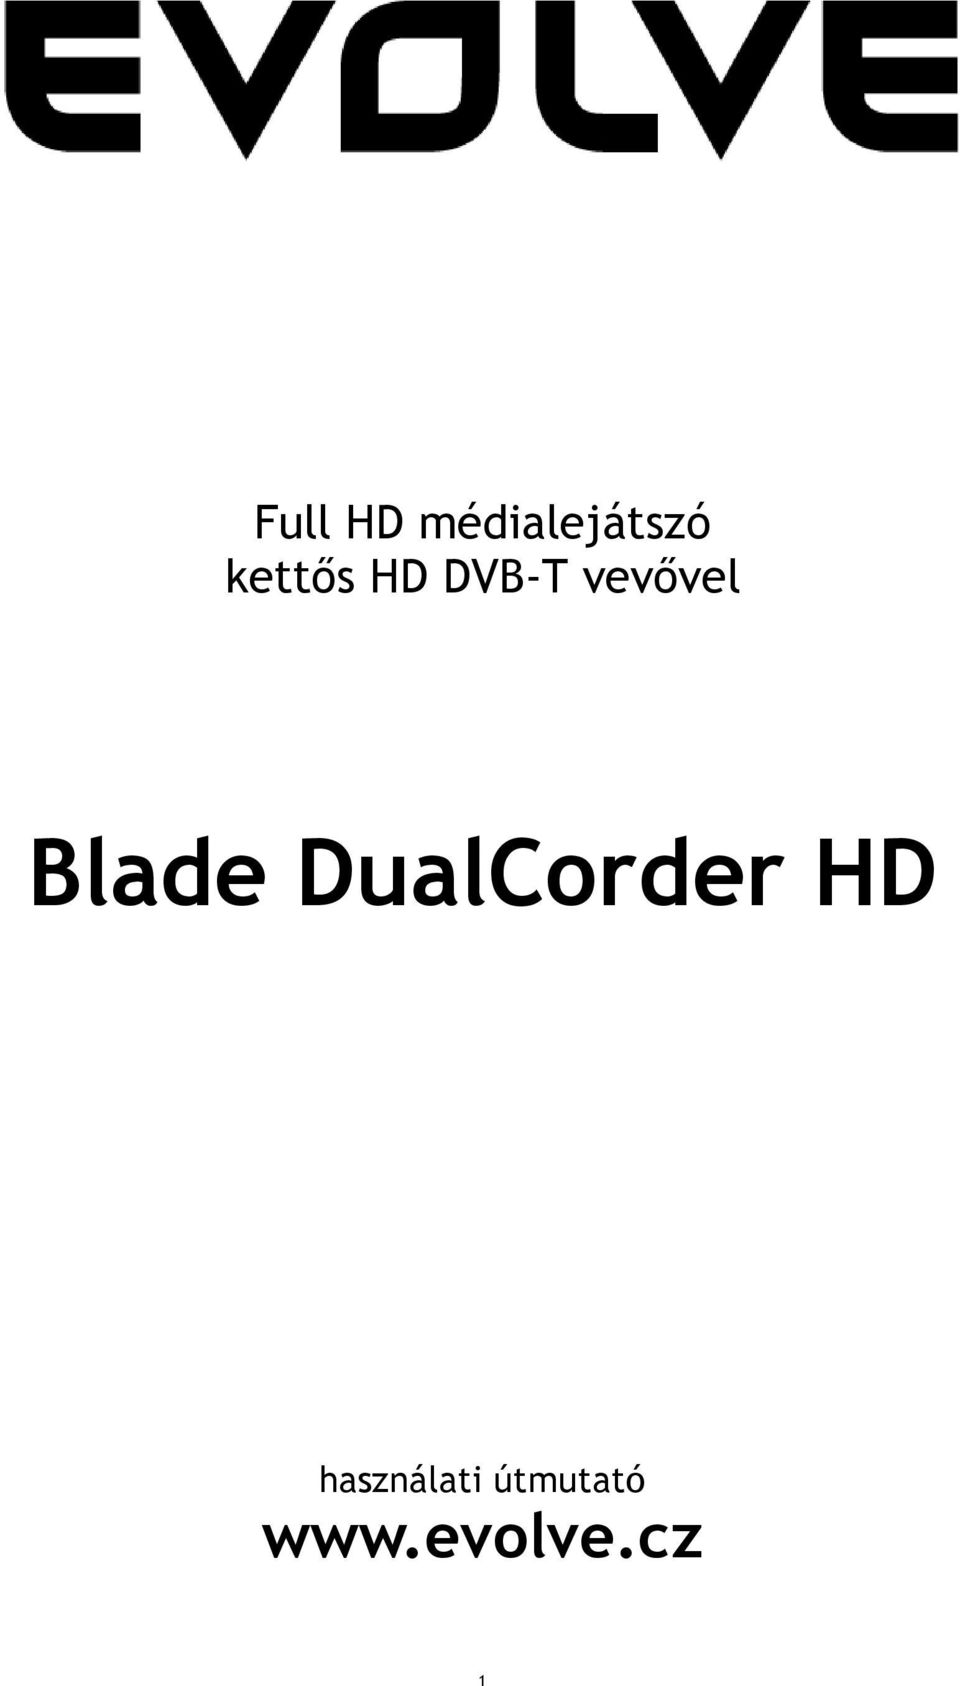 Blade DualCorder HD